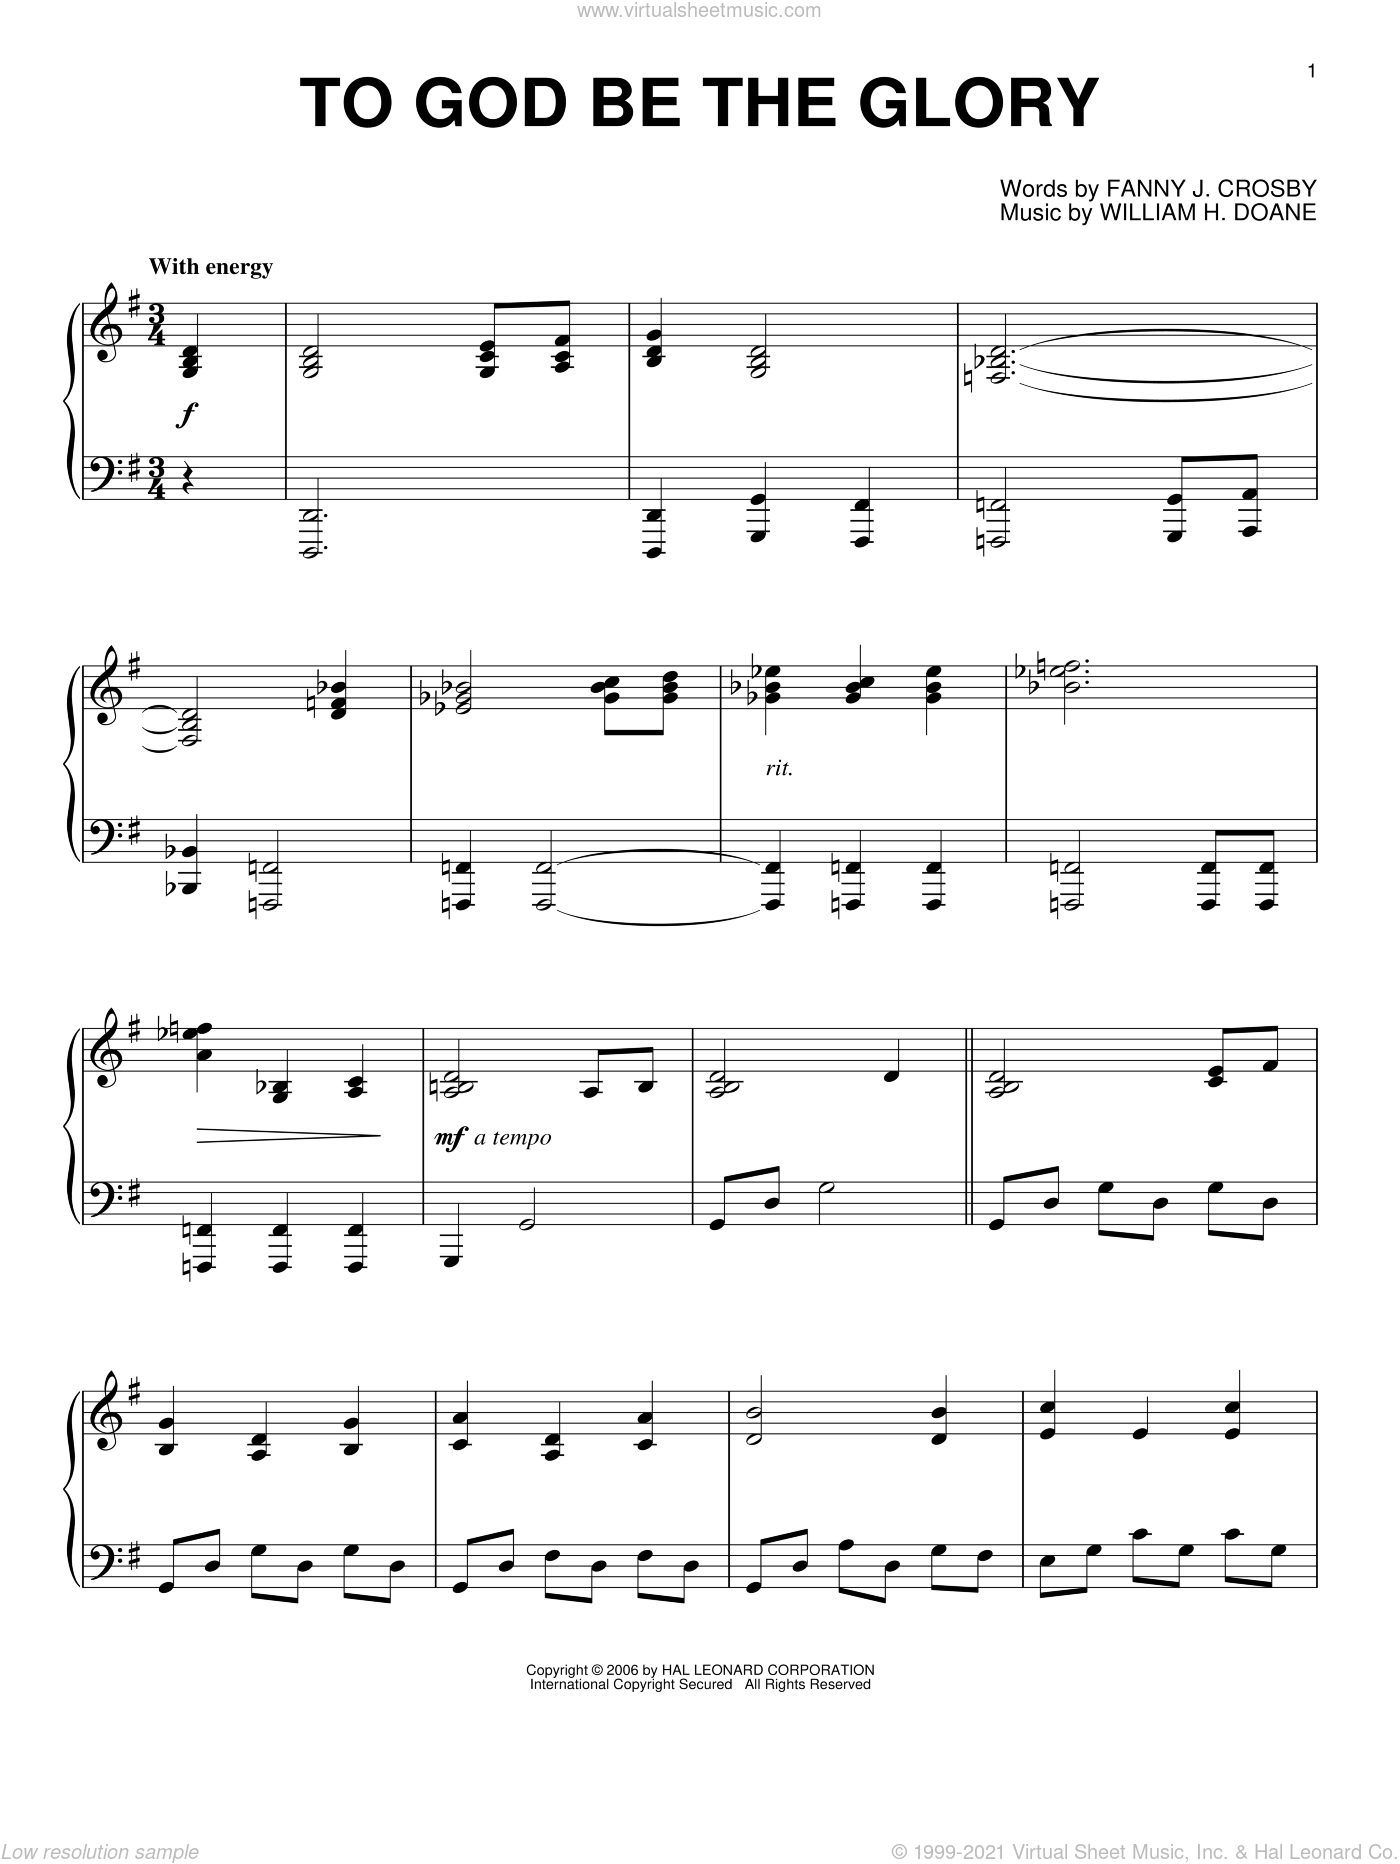 To God Be The Glory sheet music for piano solo by William H. Doane